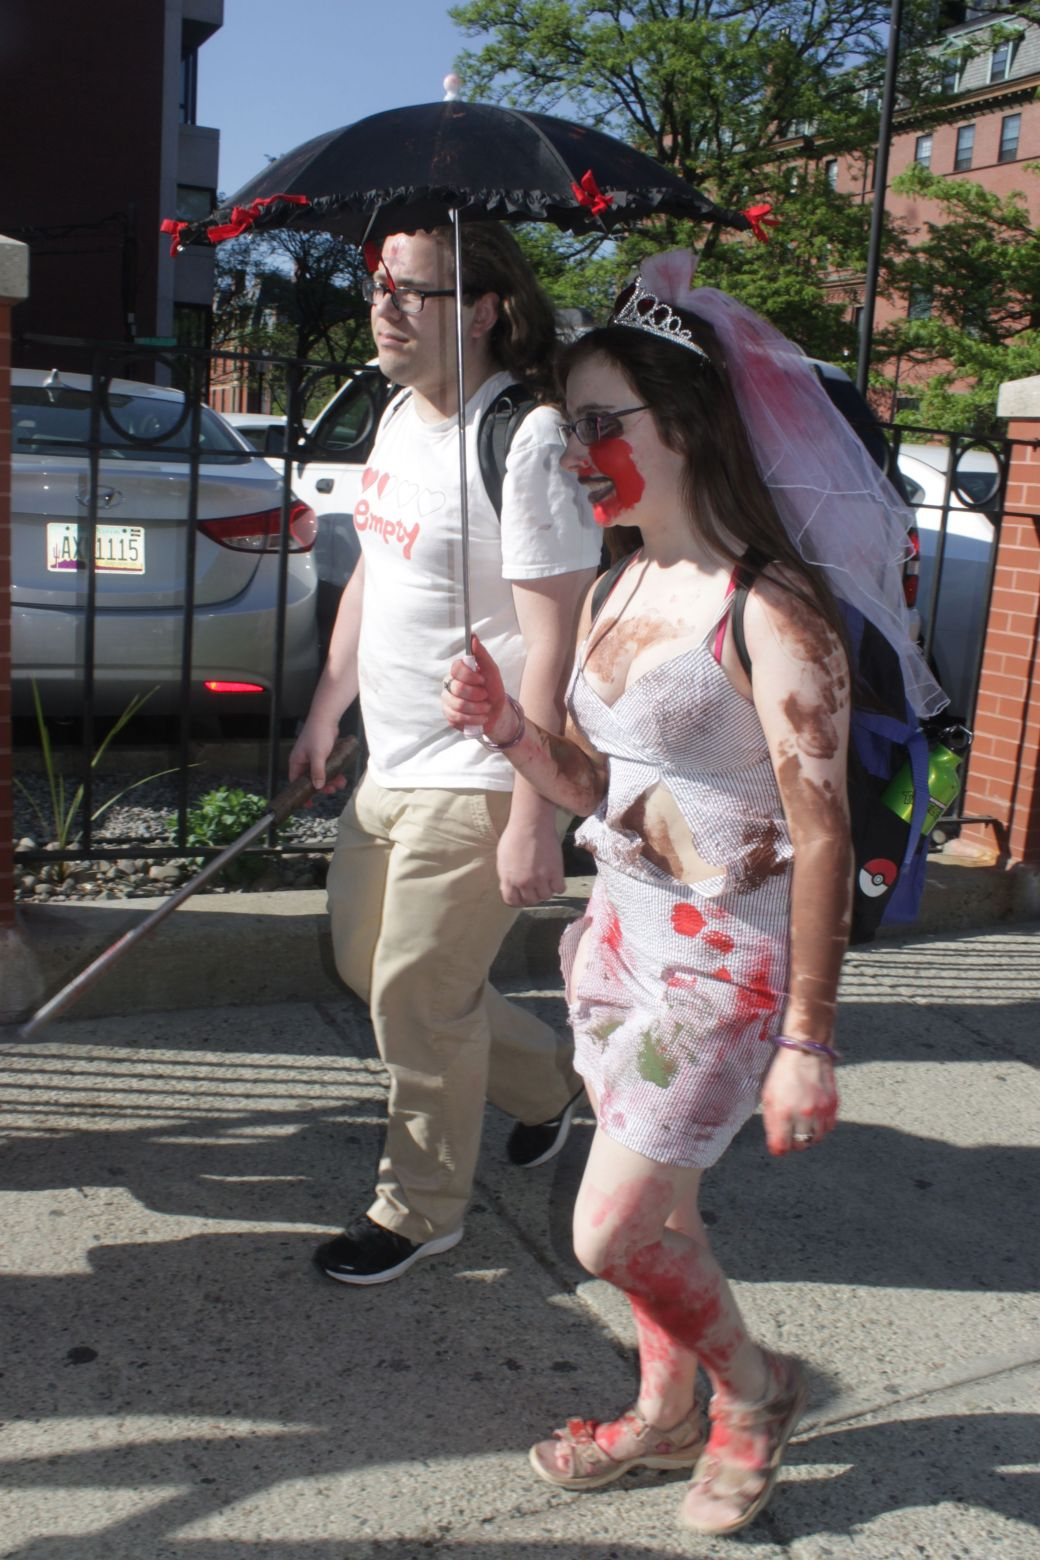 boston zombie walk may 17 69